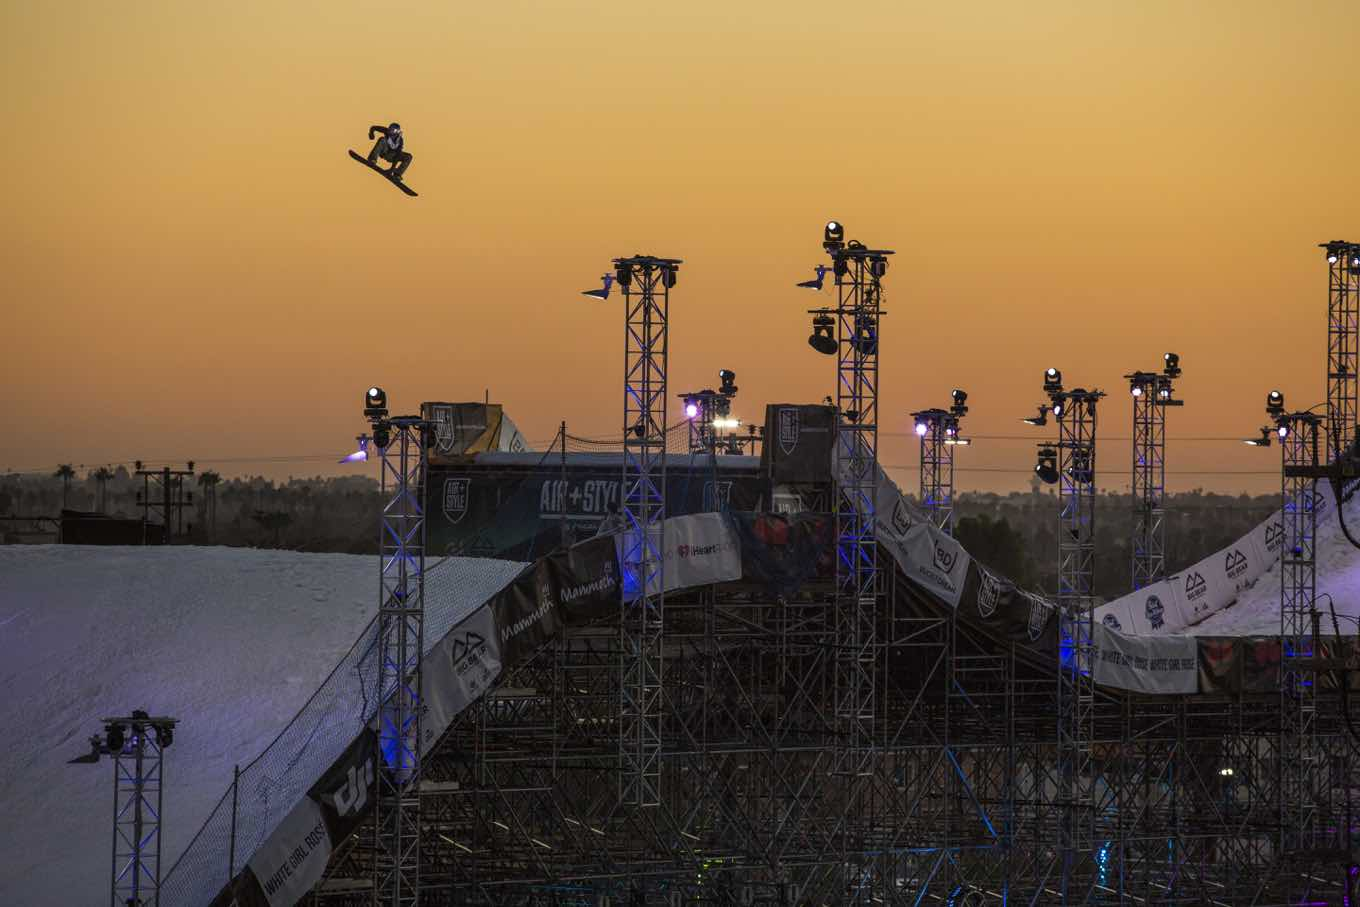 (Photo by: Air + Style)